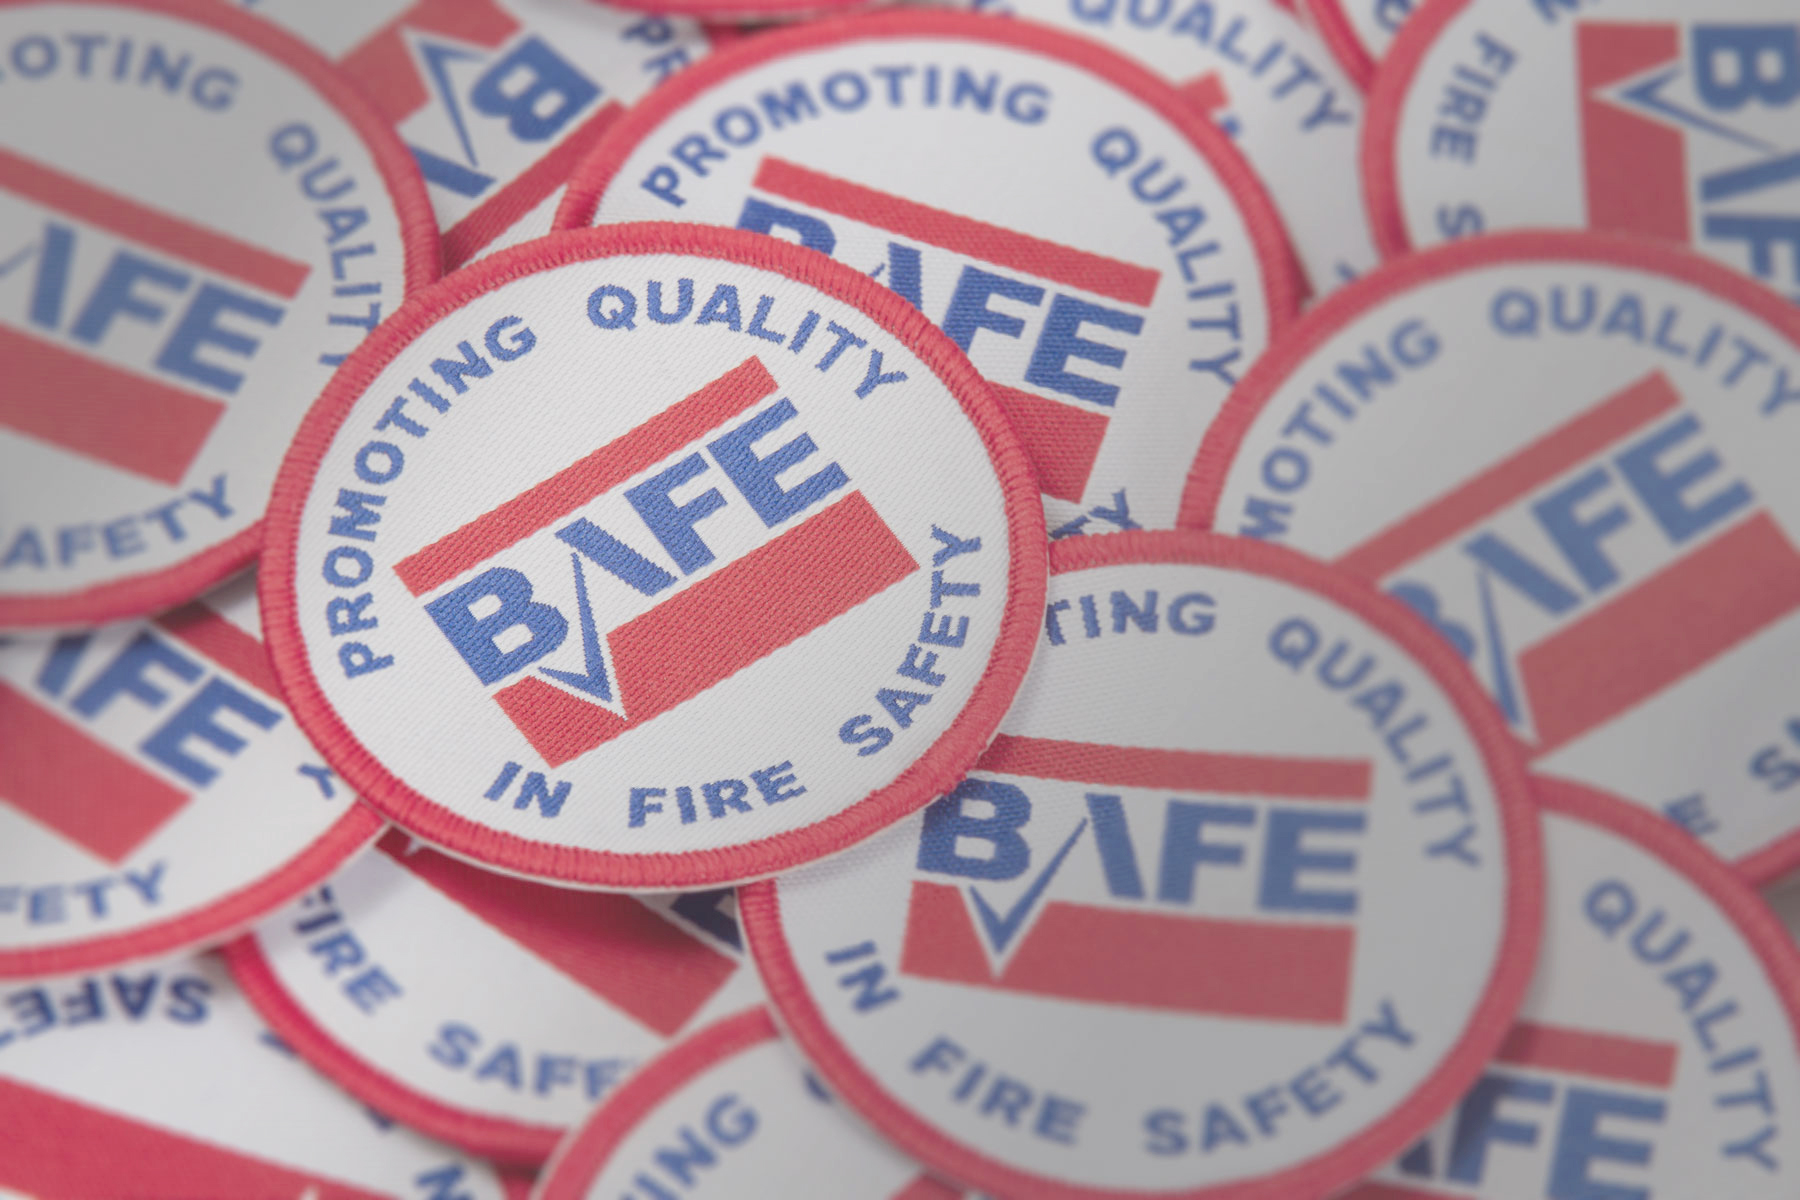 Promoting Quality in Fire Safety